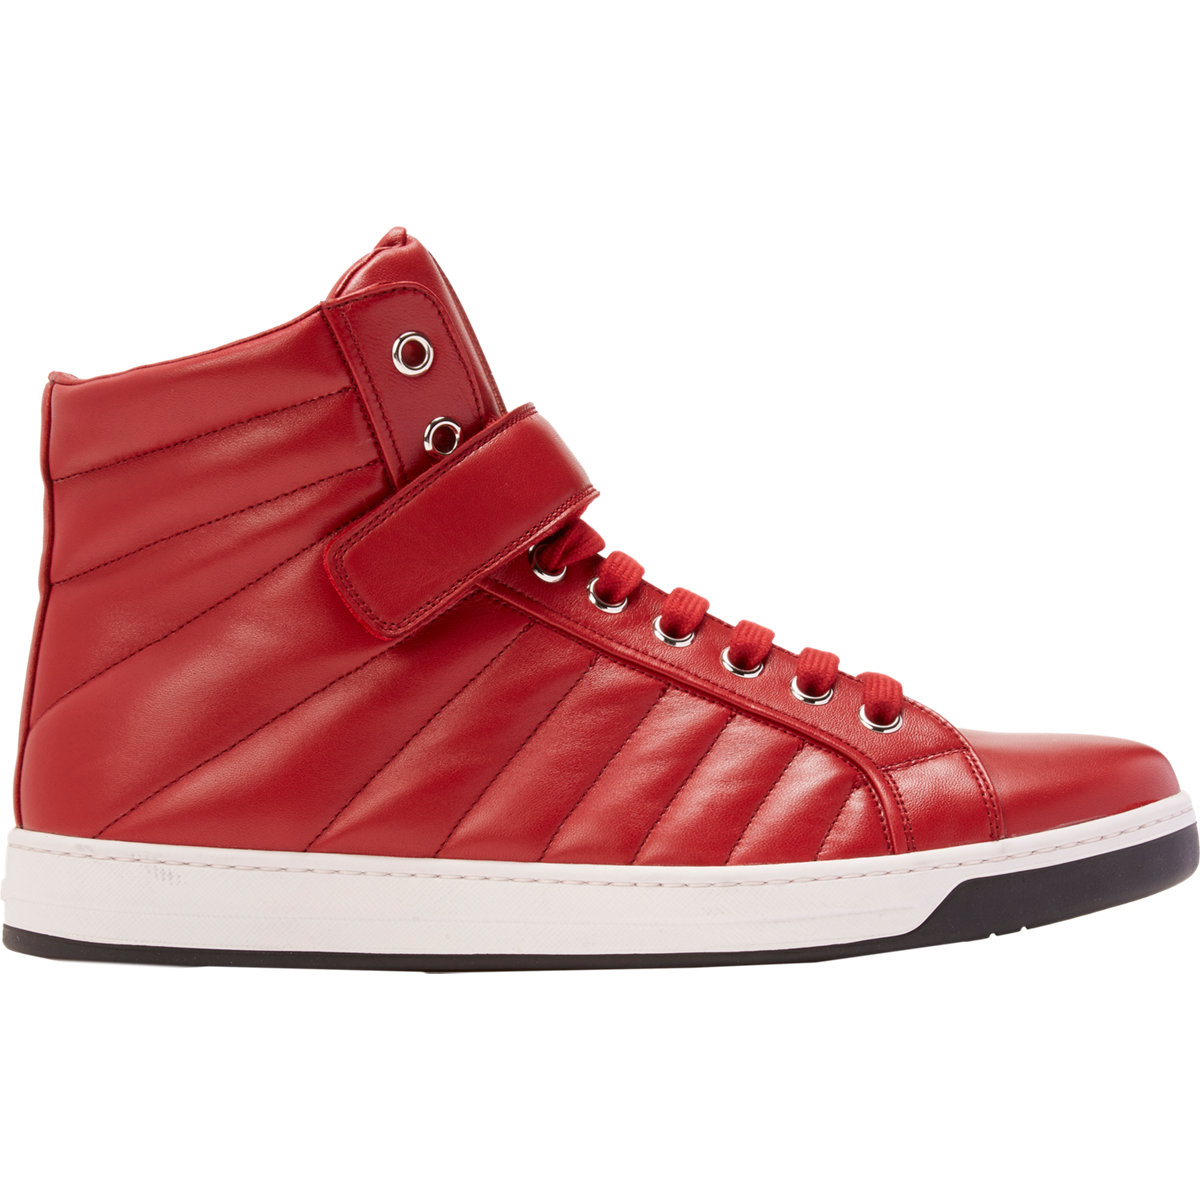 Find great deals on eBay for red high top sneakers. Shop with confidence.